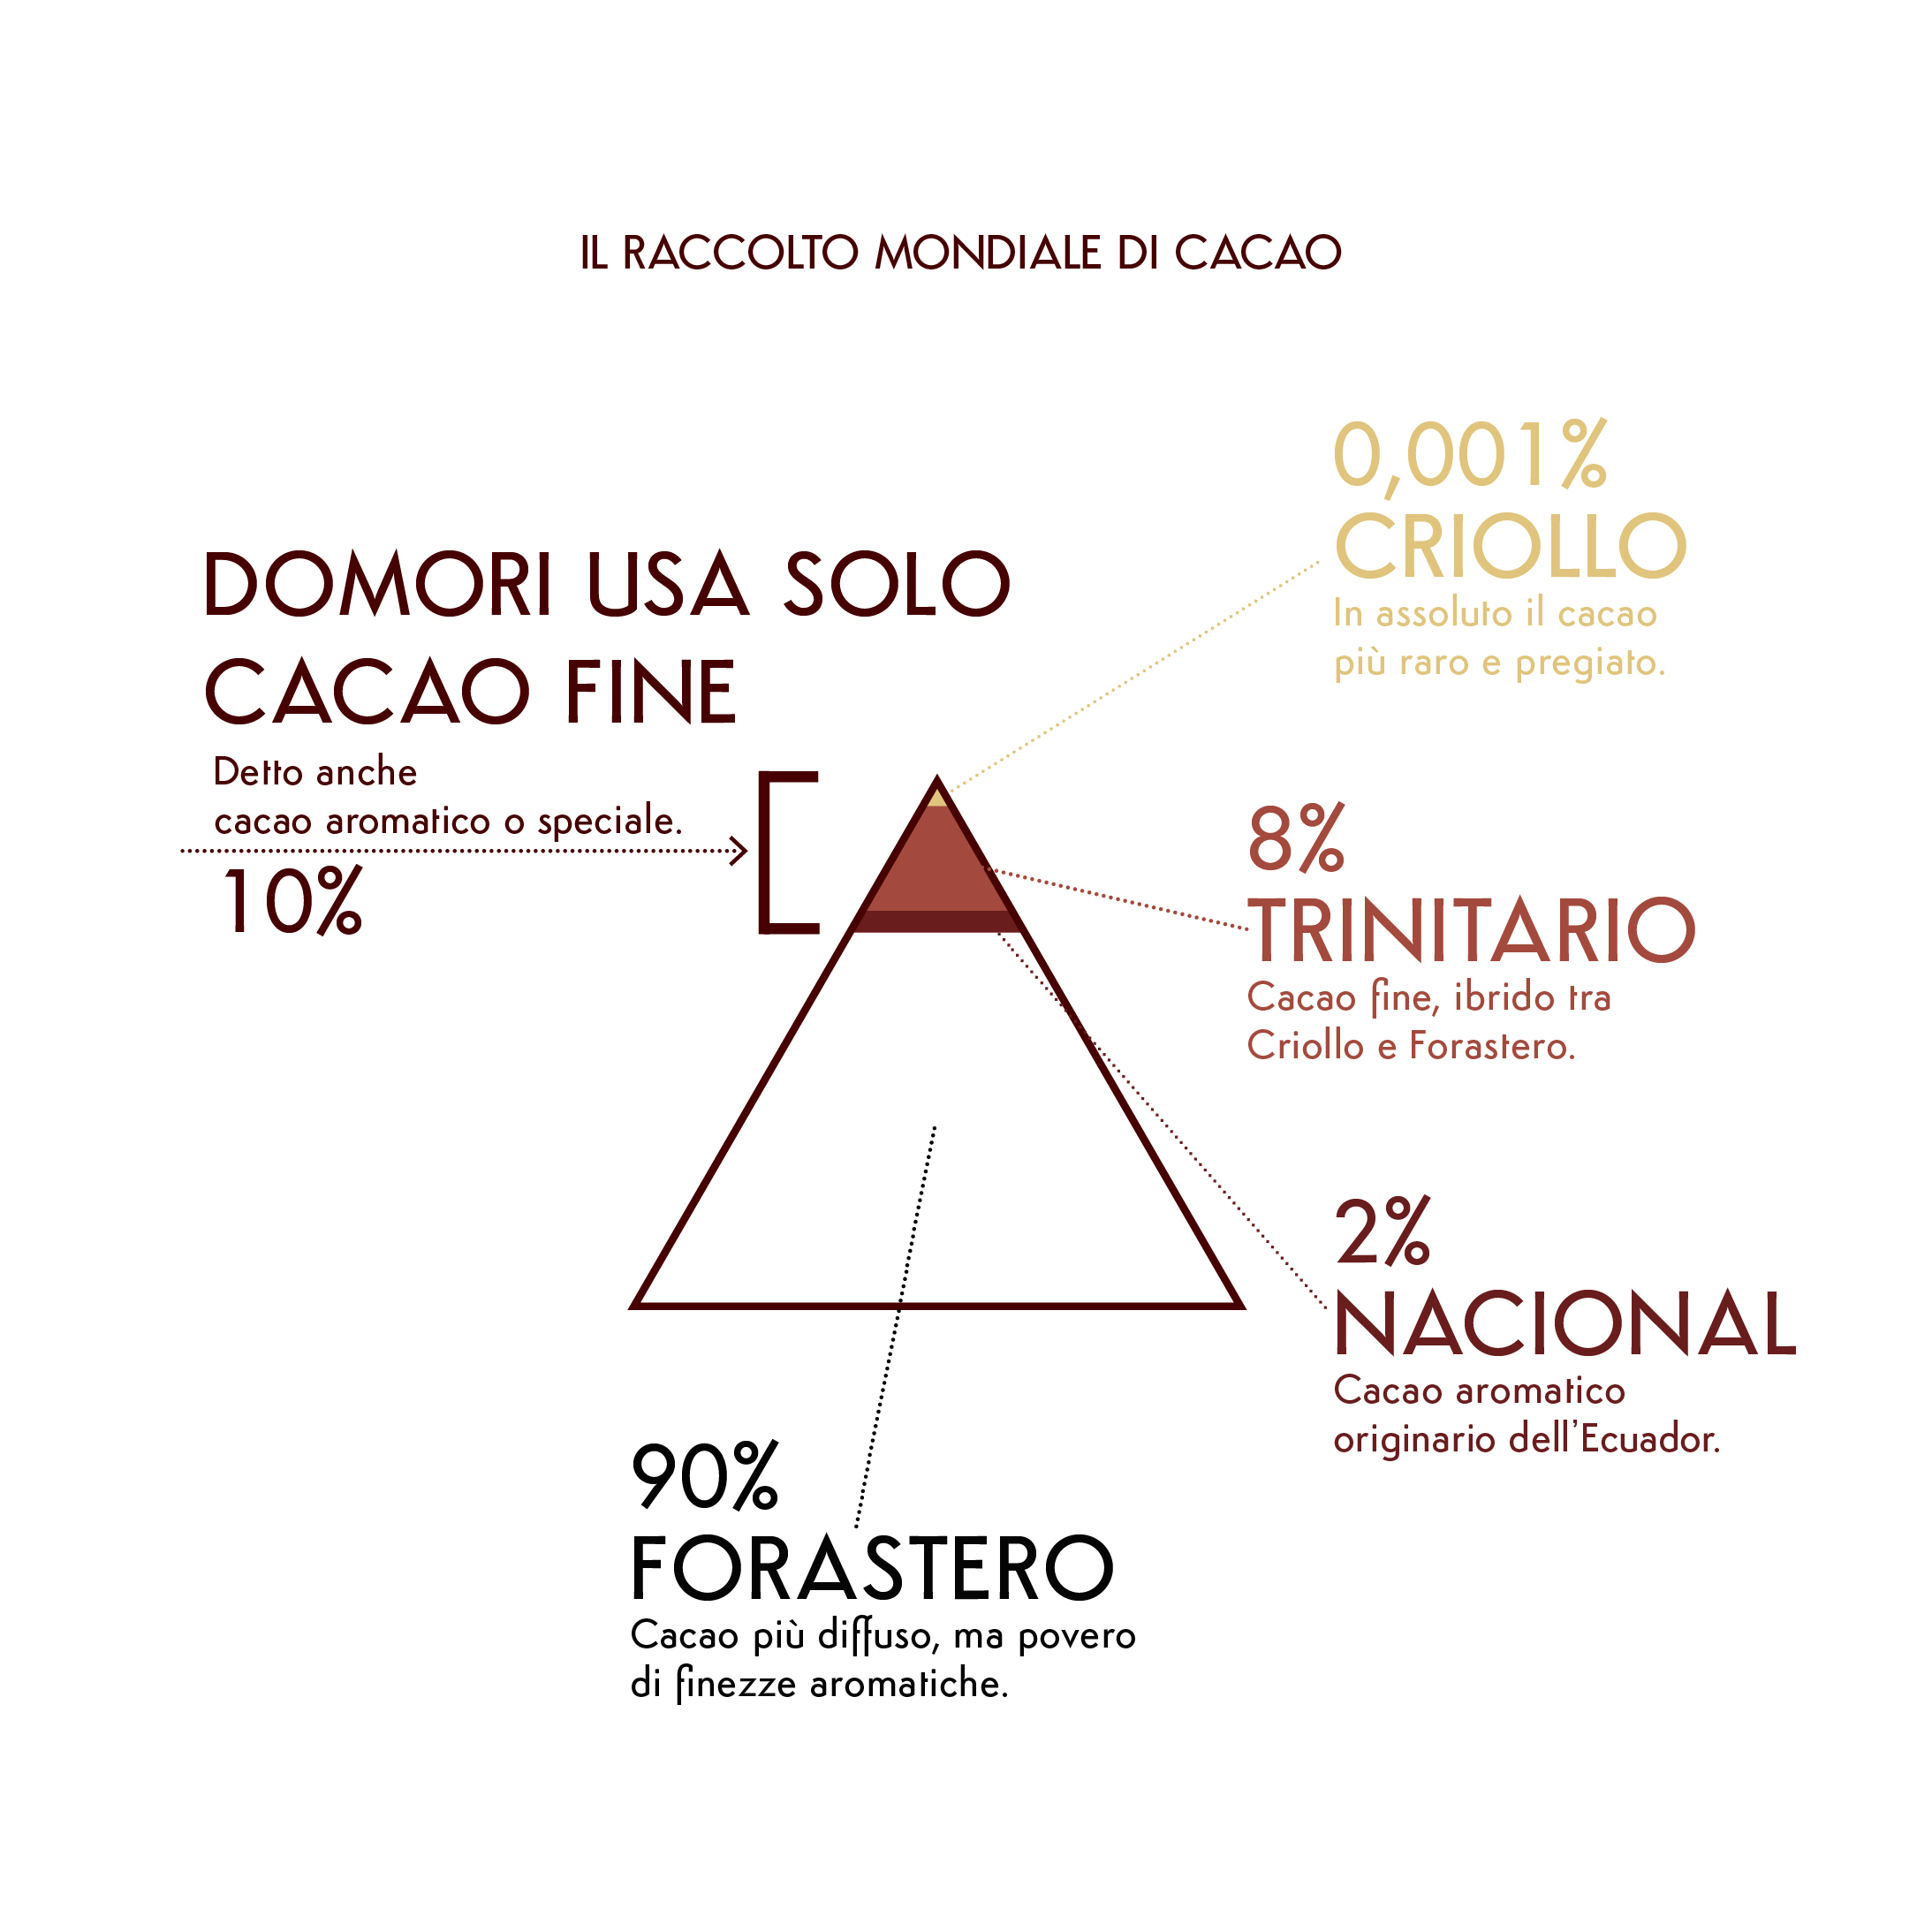 piramide_modificata-01.jpg